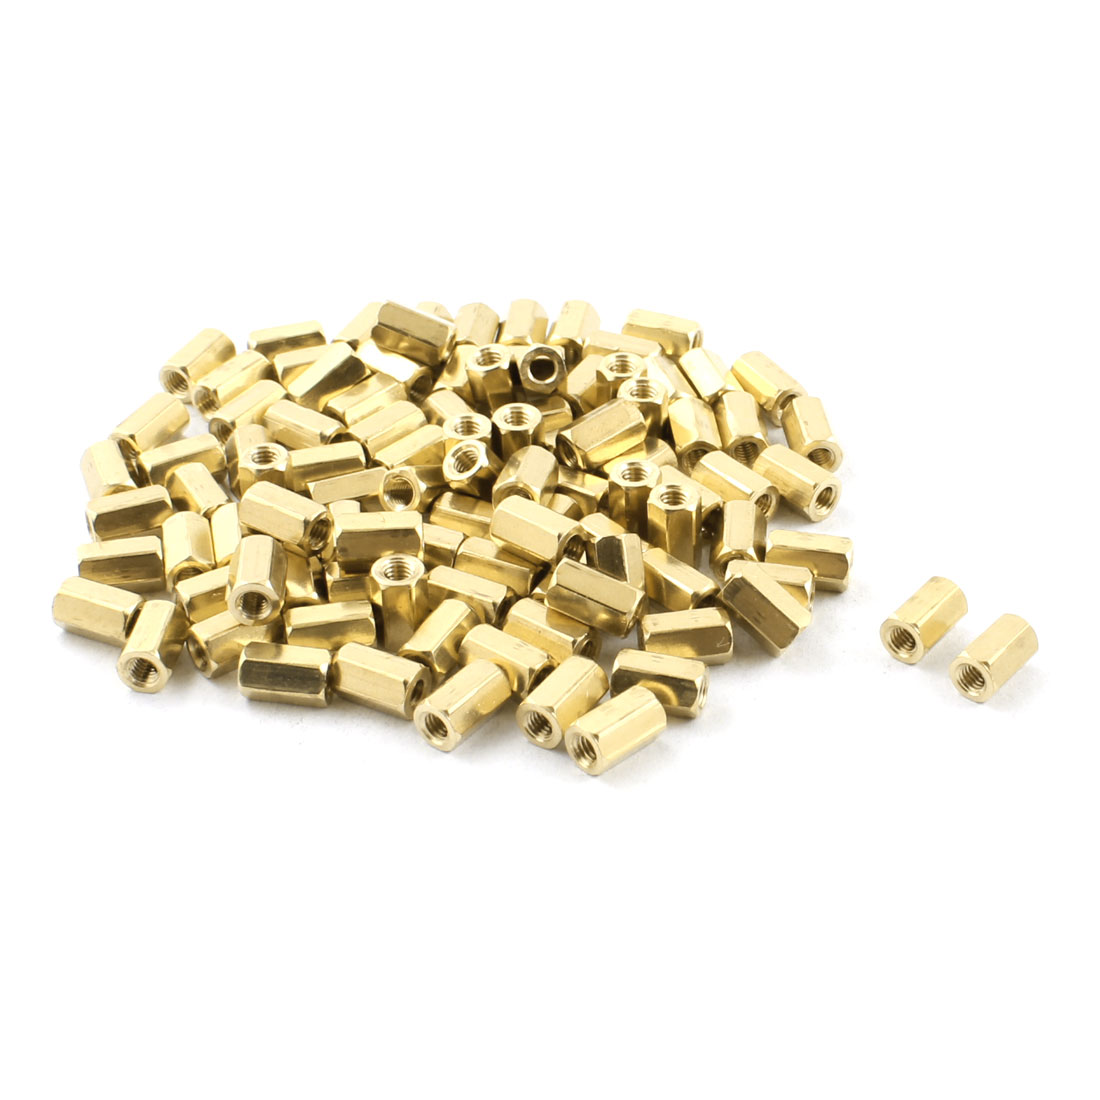 M3 Female Thread Dual Ends Gold Tone Brass Pillar PCB Standoff Hexagonal Nut Spacer 8mm 100Pcs